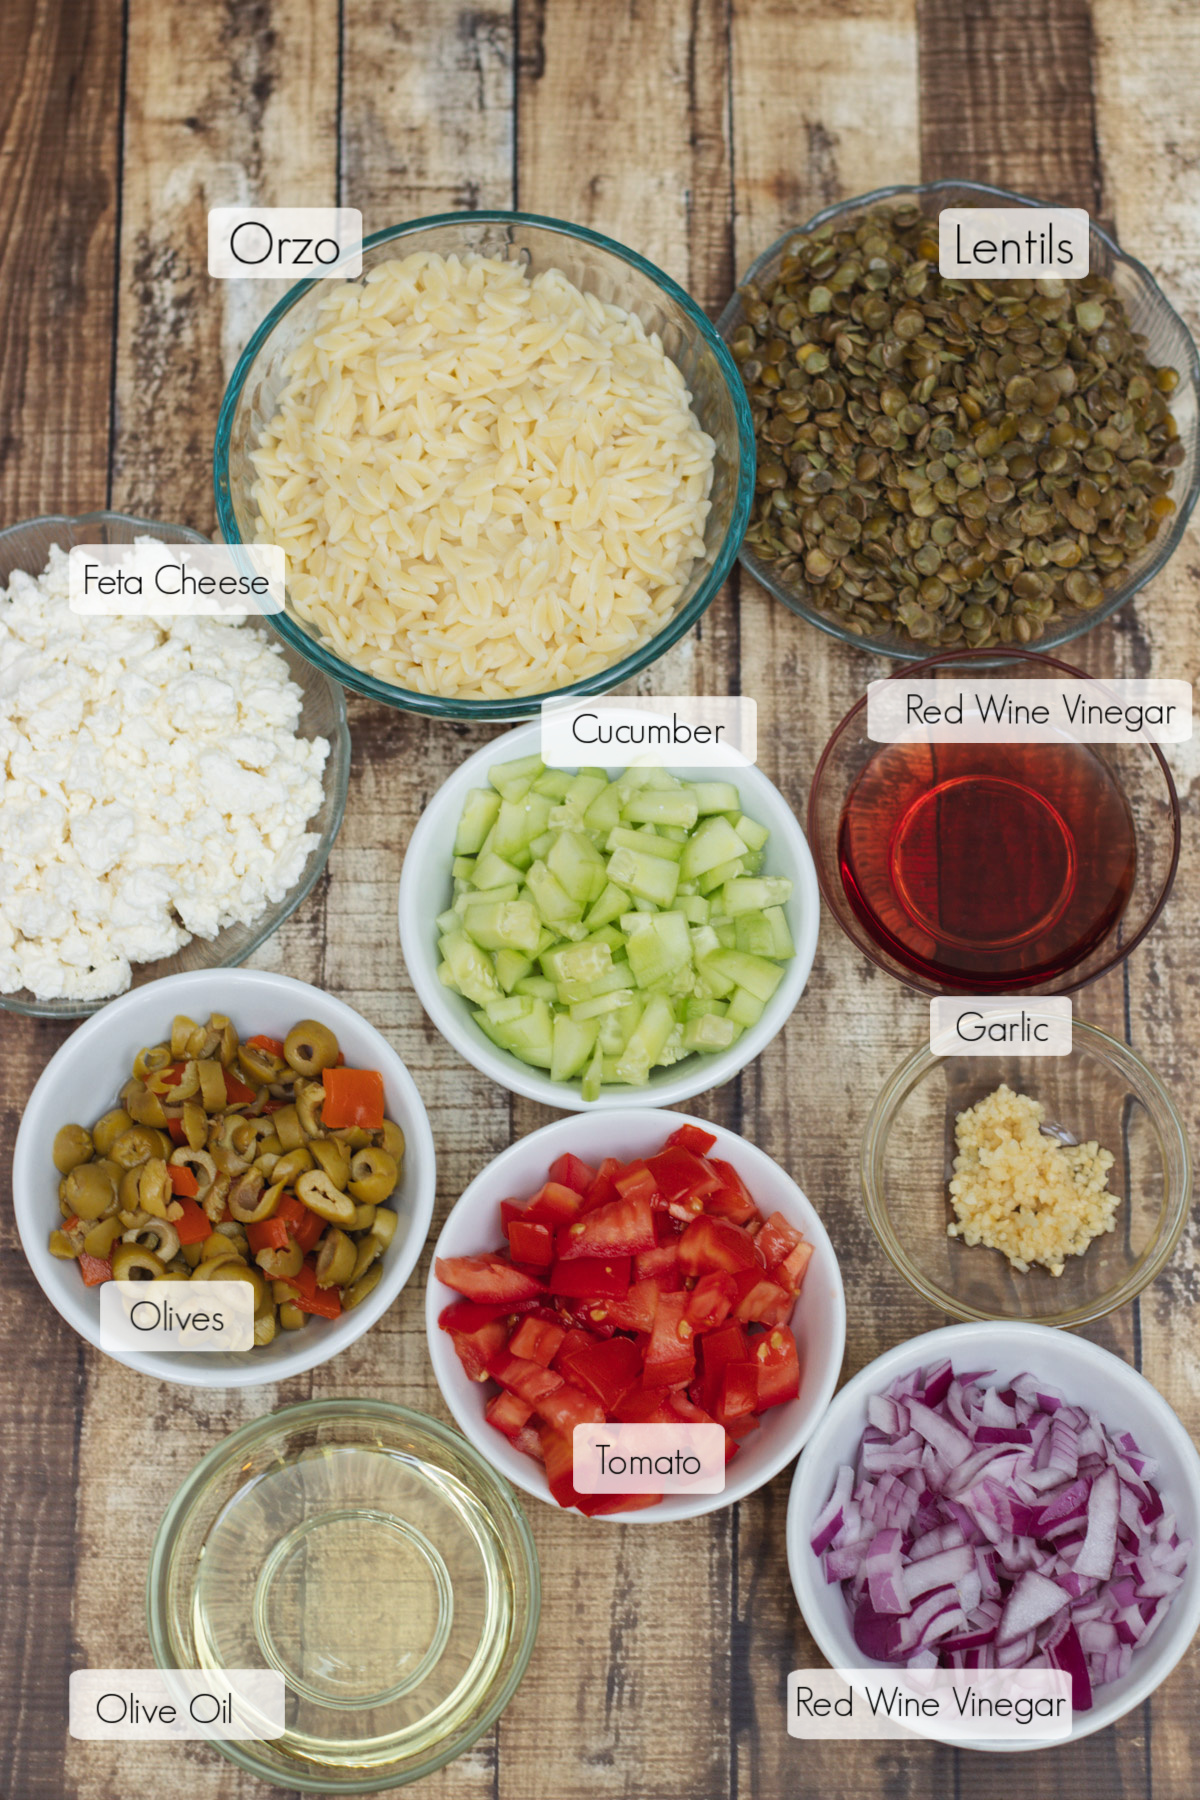 Image of ingredients in bowls with labels for Greek Orzo Salad with Lentils.